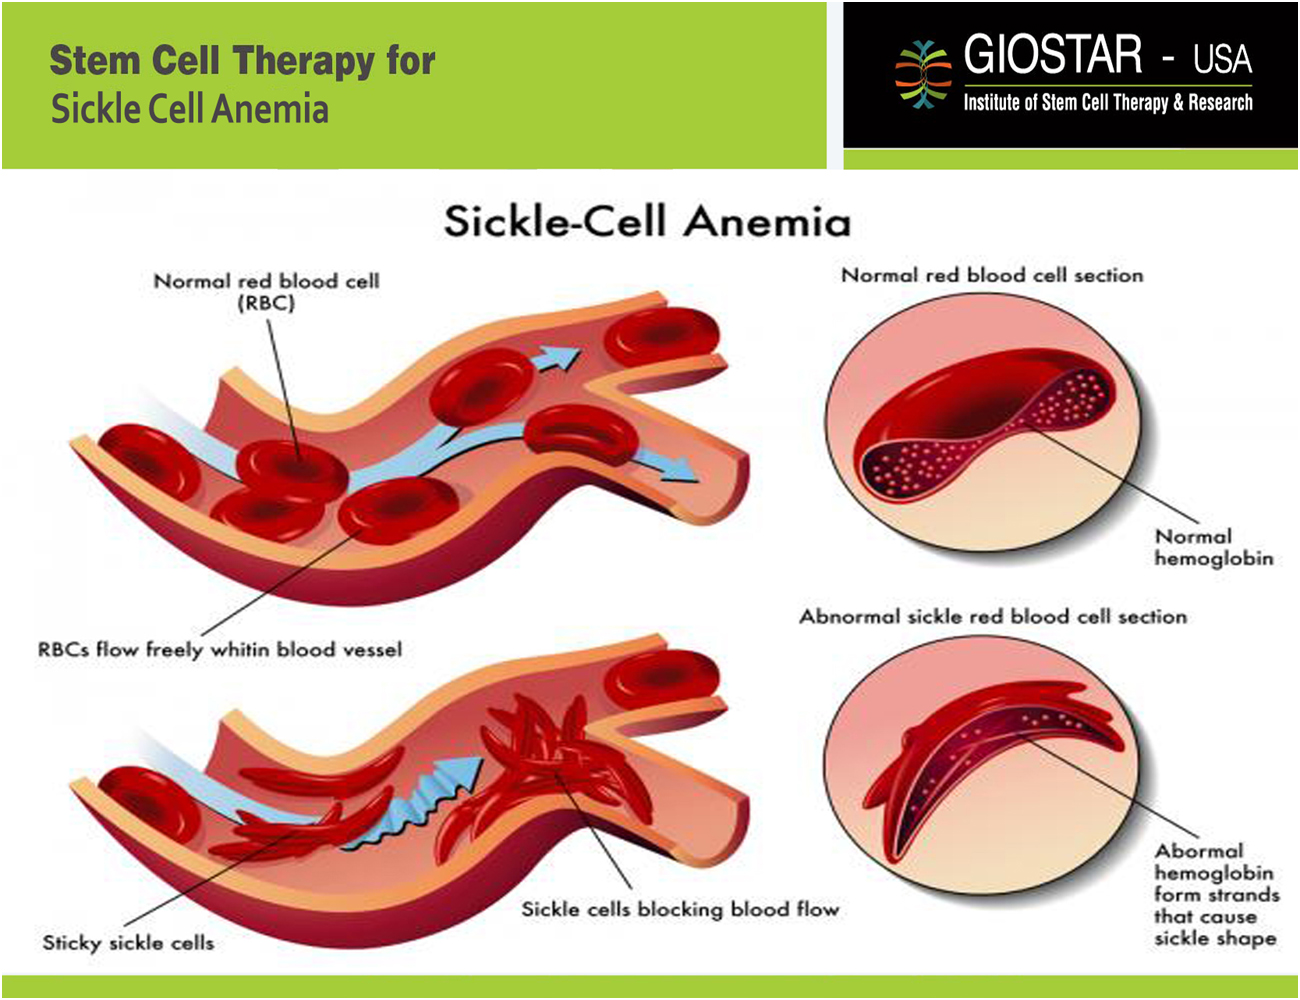 evolution of disease sickle cell anemia ¥ sickle cell disease diagnosis lab student instructions and questions evolution, and societal and ethical issues as well instructional materials sickle cell anemia, also known as sickle cell disease.